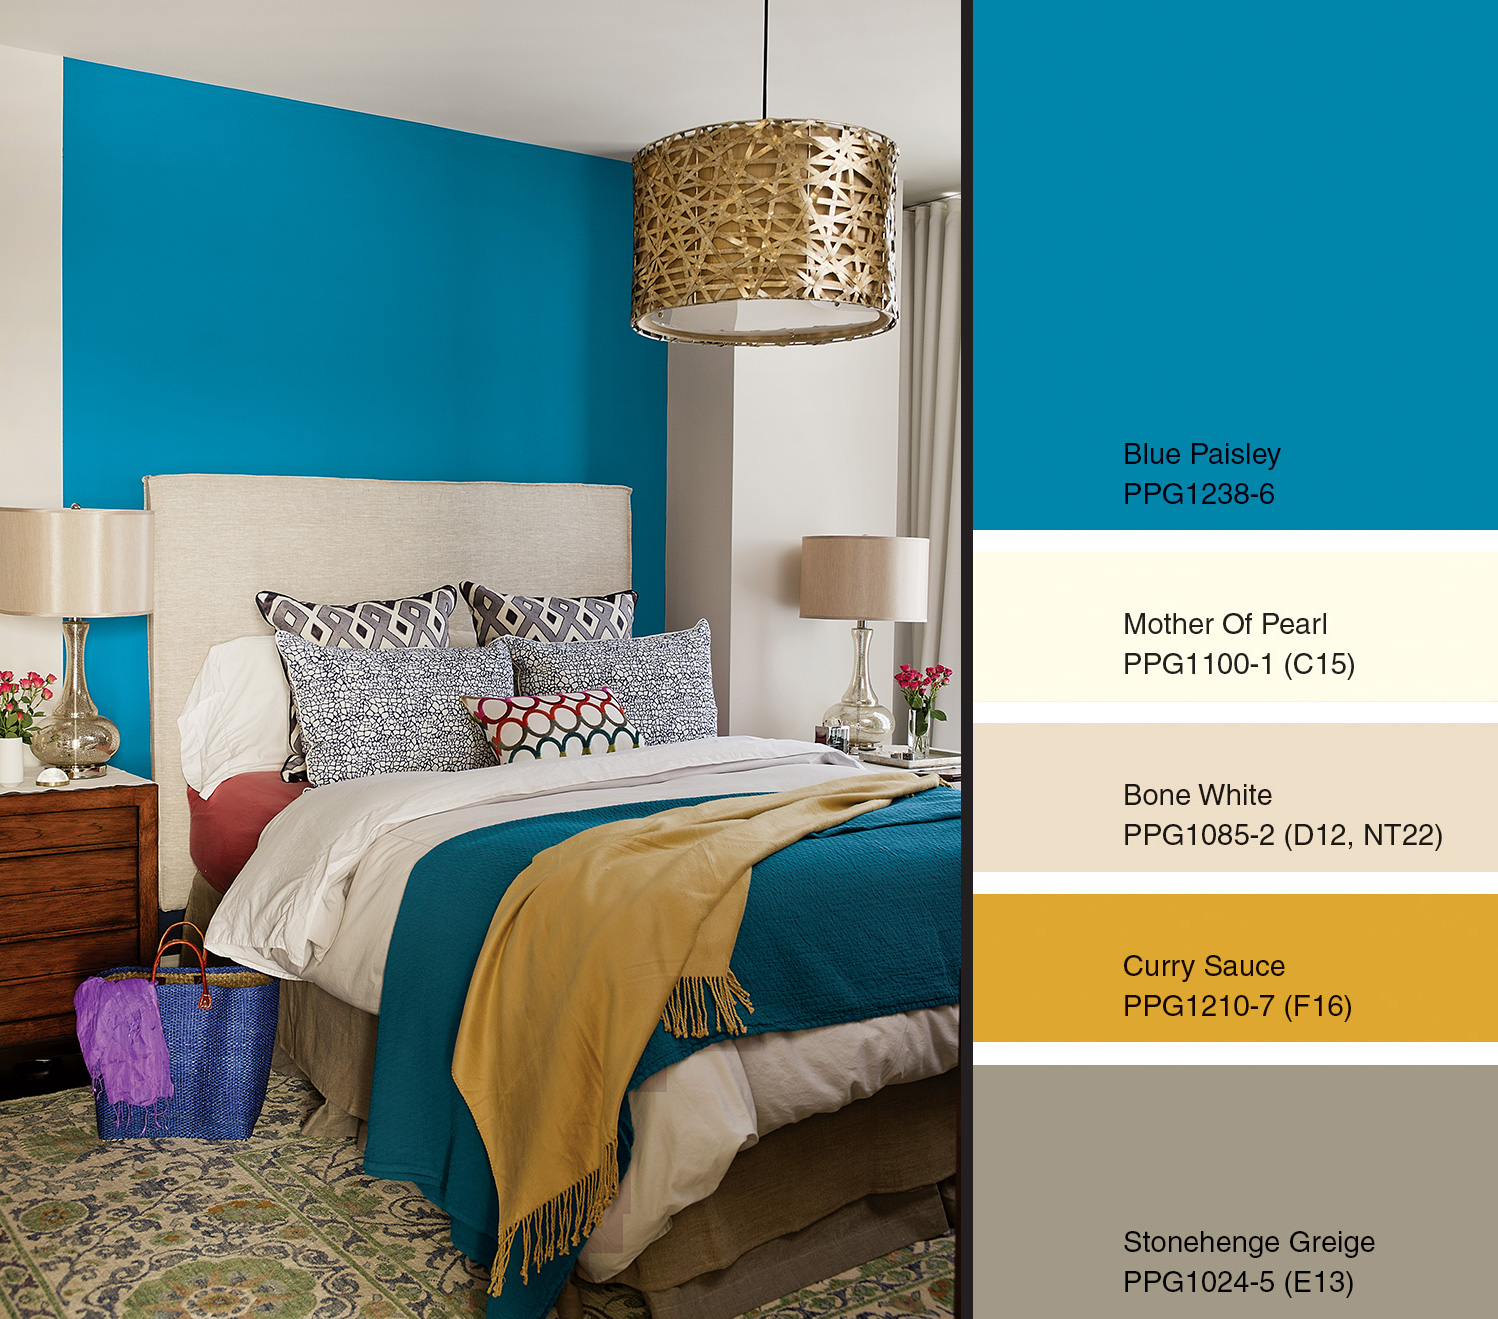 blue paisley named 2015 color of the yearppg p - ppg - paints